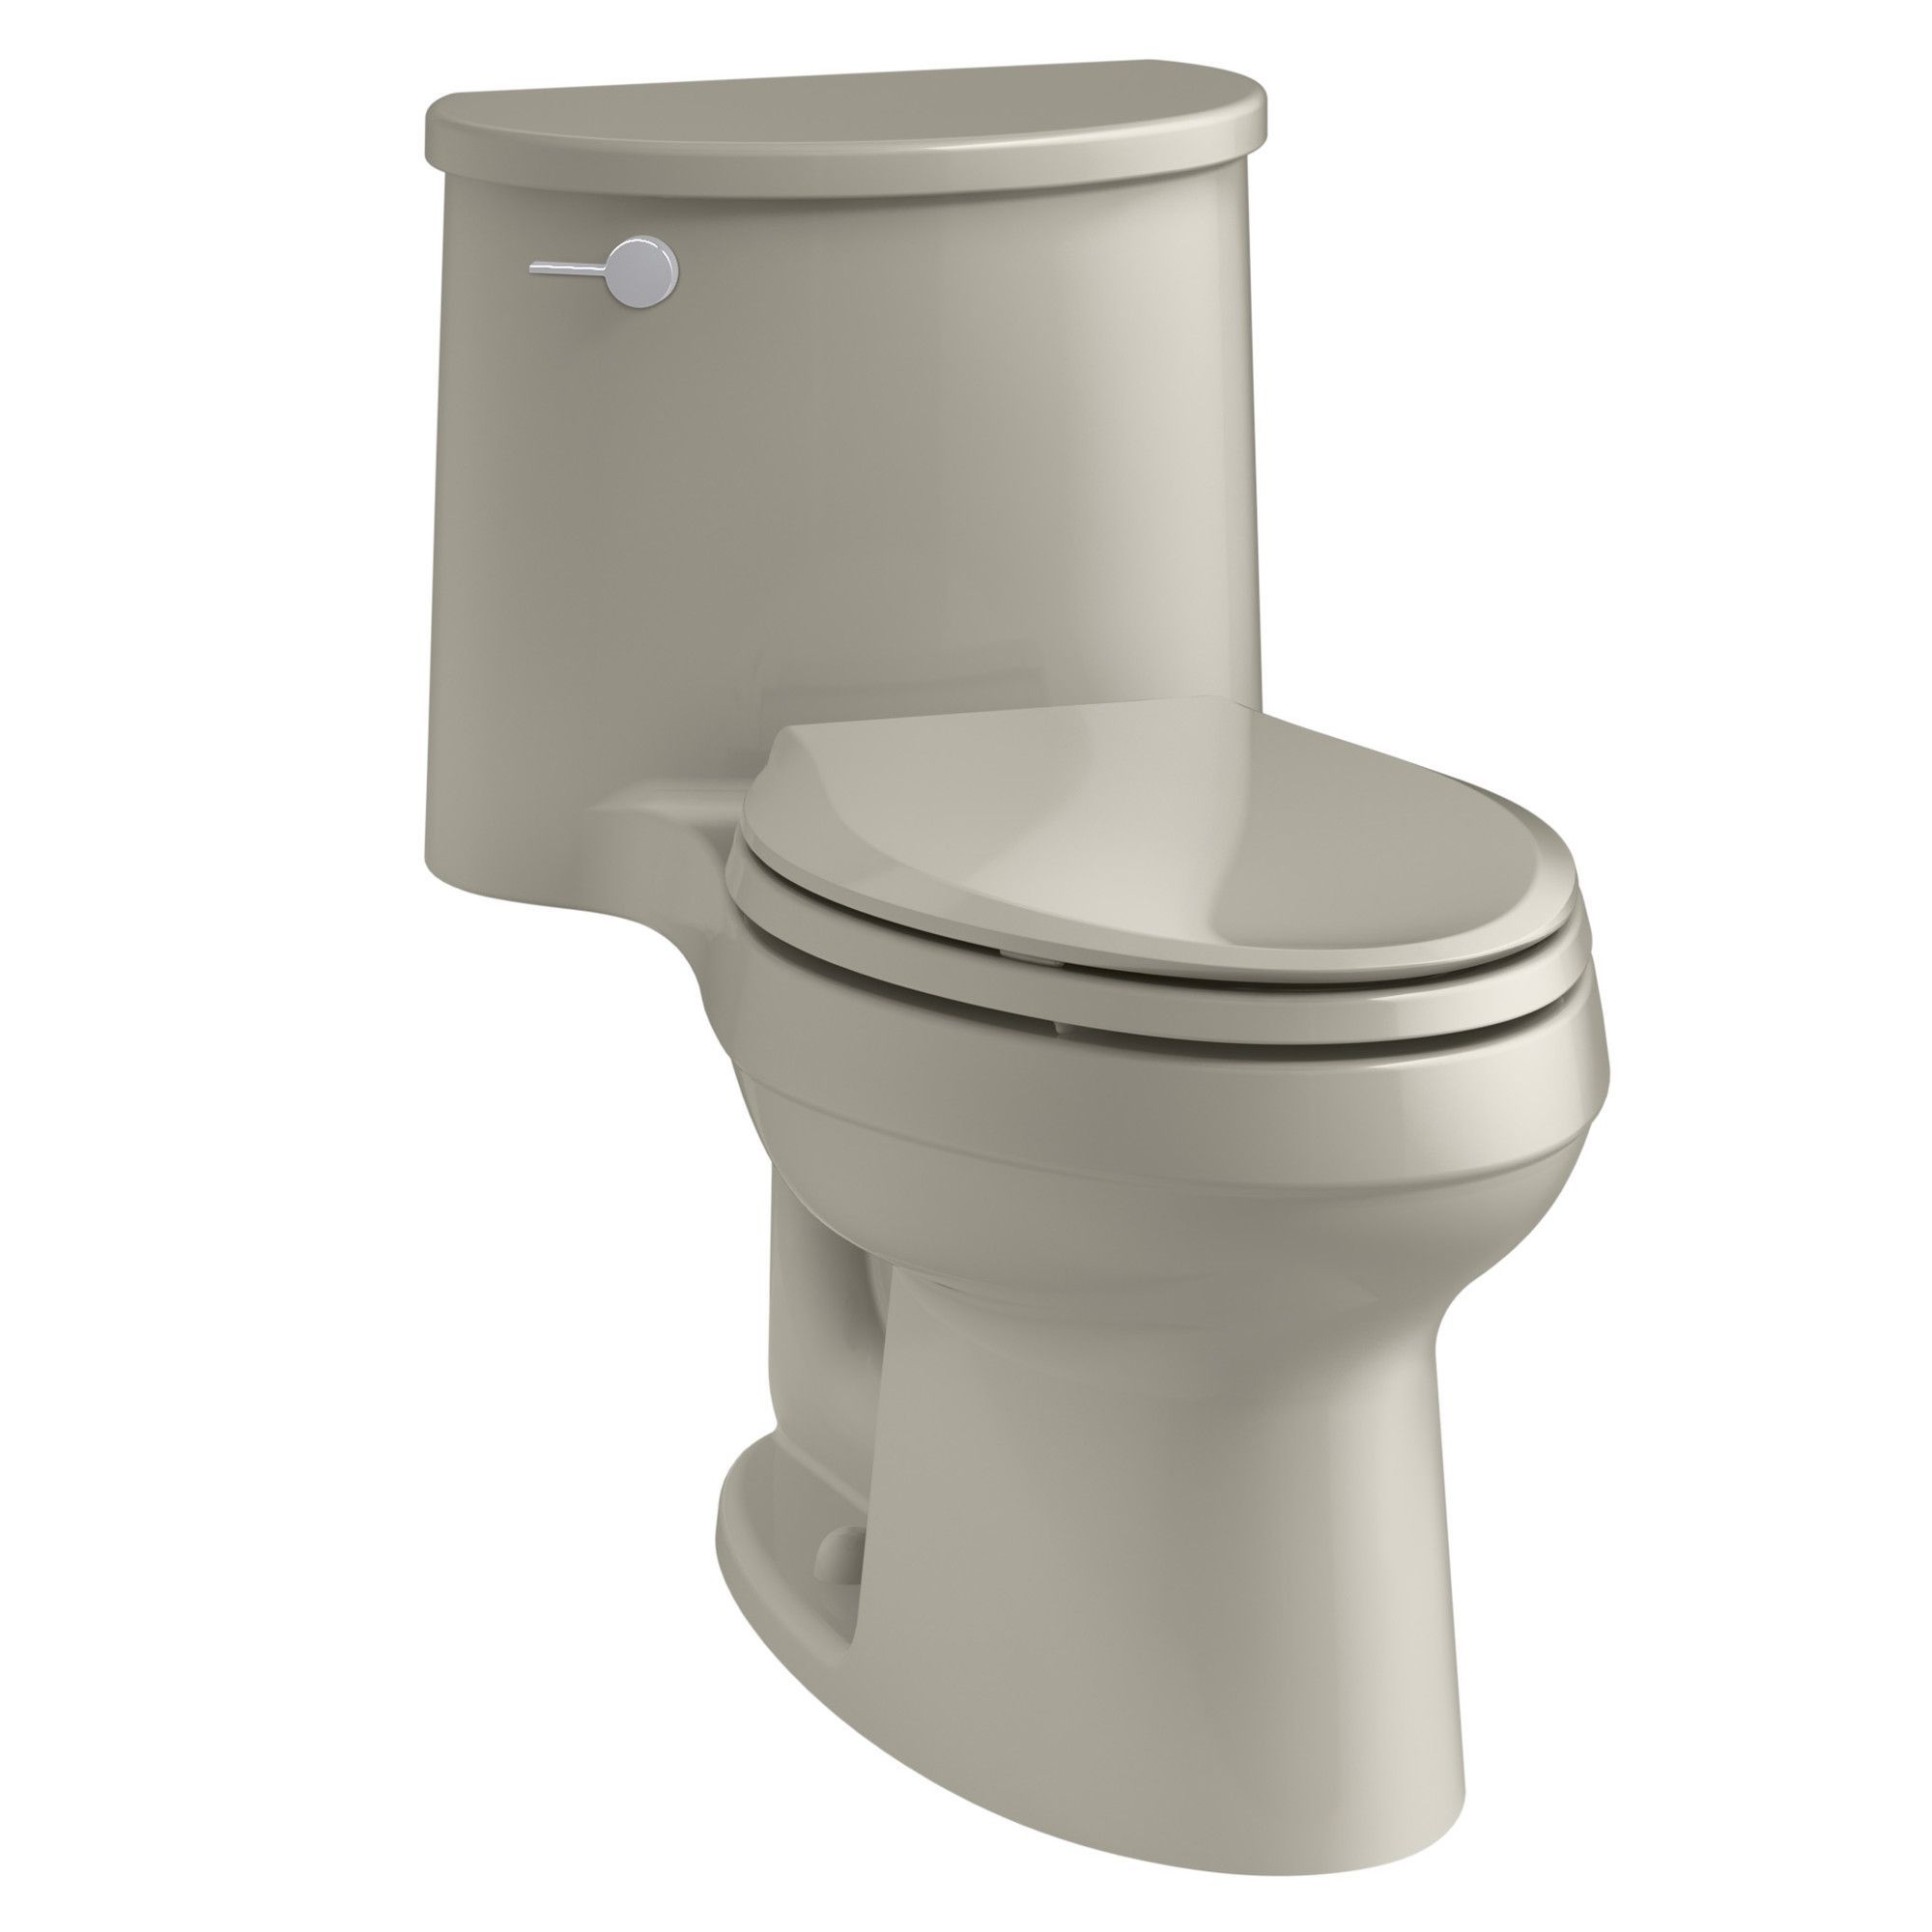 Adair One-Piece Elongated 1.28 GPF Toilet with Aquapiston Flush Technology and Left-Hand Trip Lever